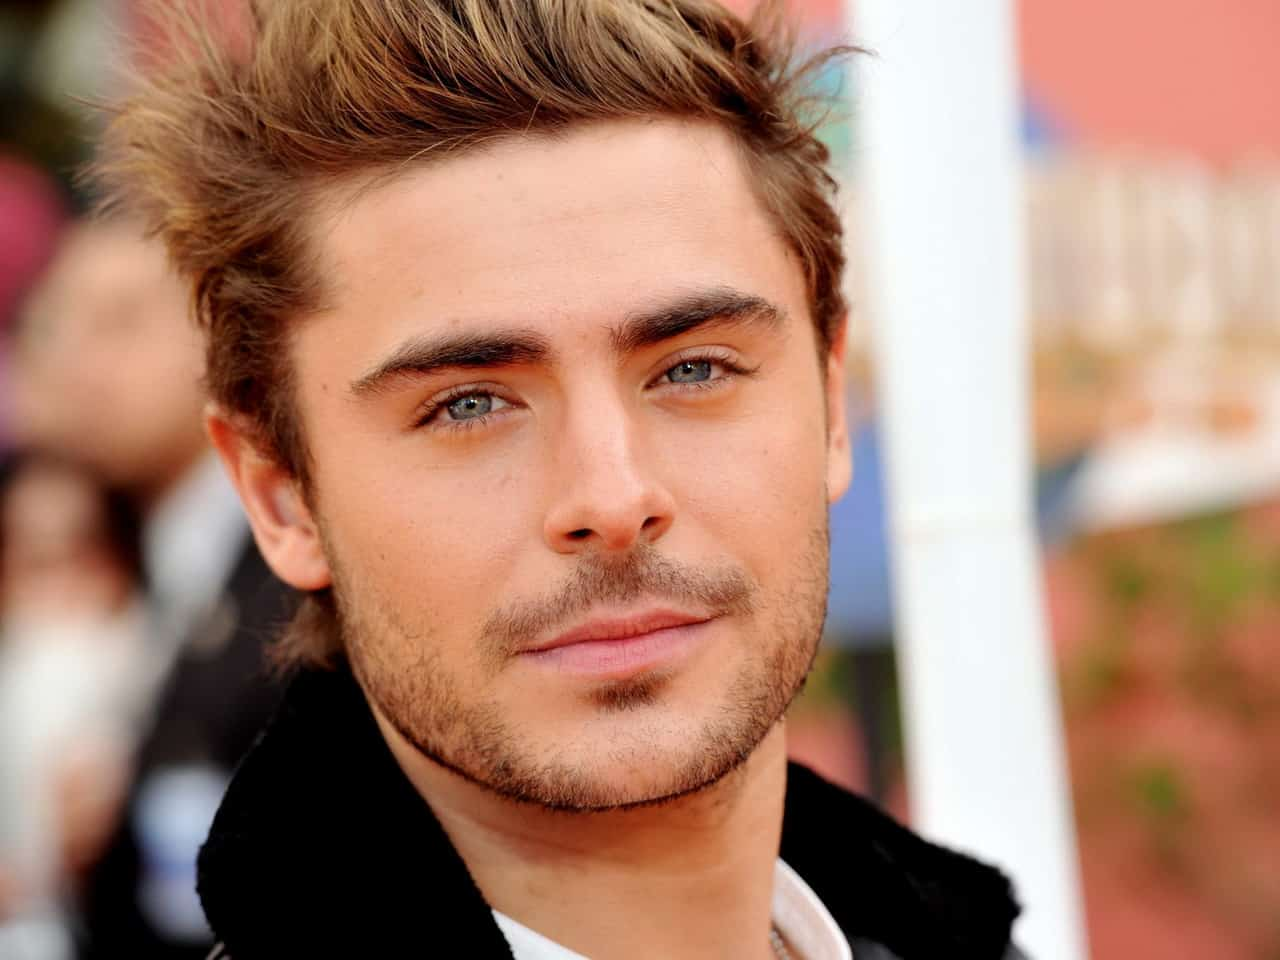 Zan Efron breaks jaw after accidentally slipping on his face